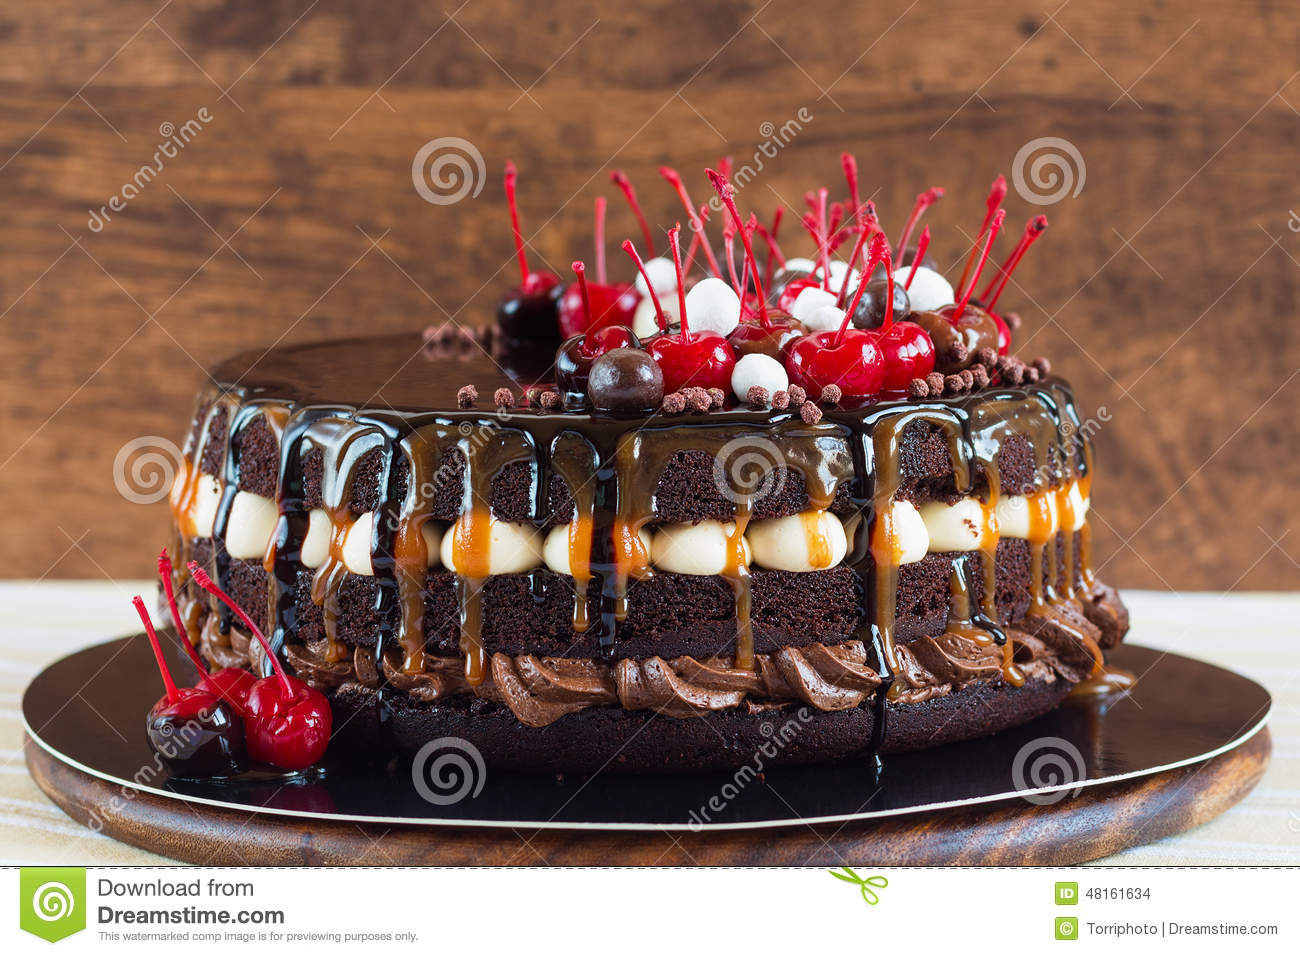 Layered chocolate cake decorated with cream, cherries and chocolate ...